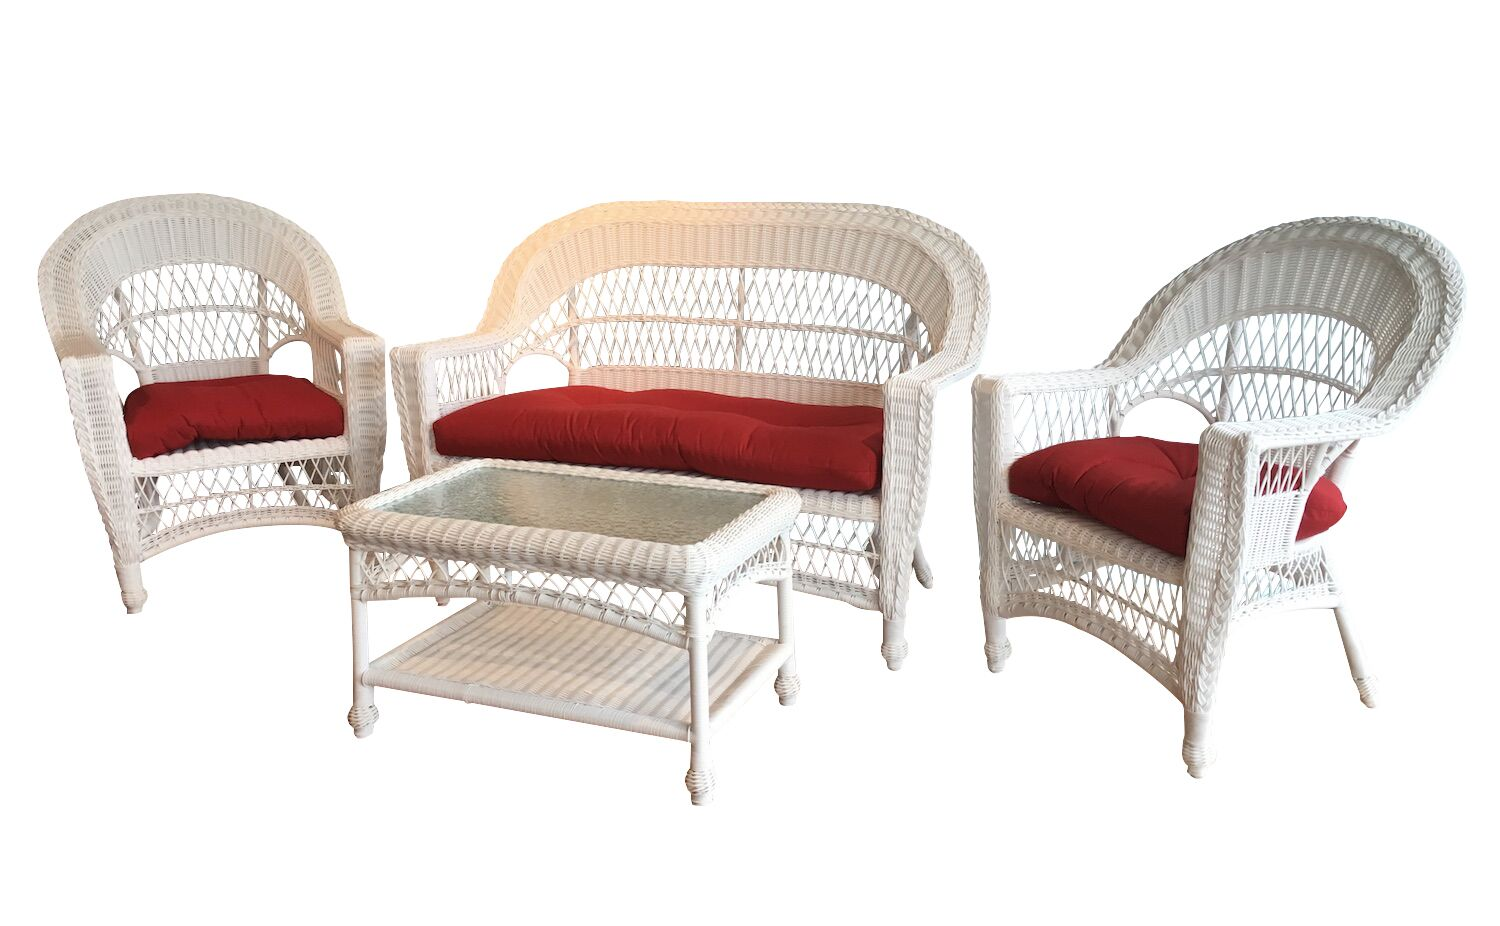 Camacho 4 Piece Sunbrella Loveseat Set with Sunbrella Cushions Color: White, Fabric: Sunbrella Red